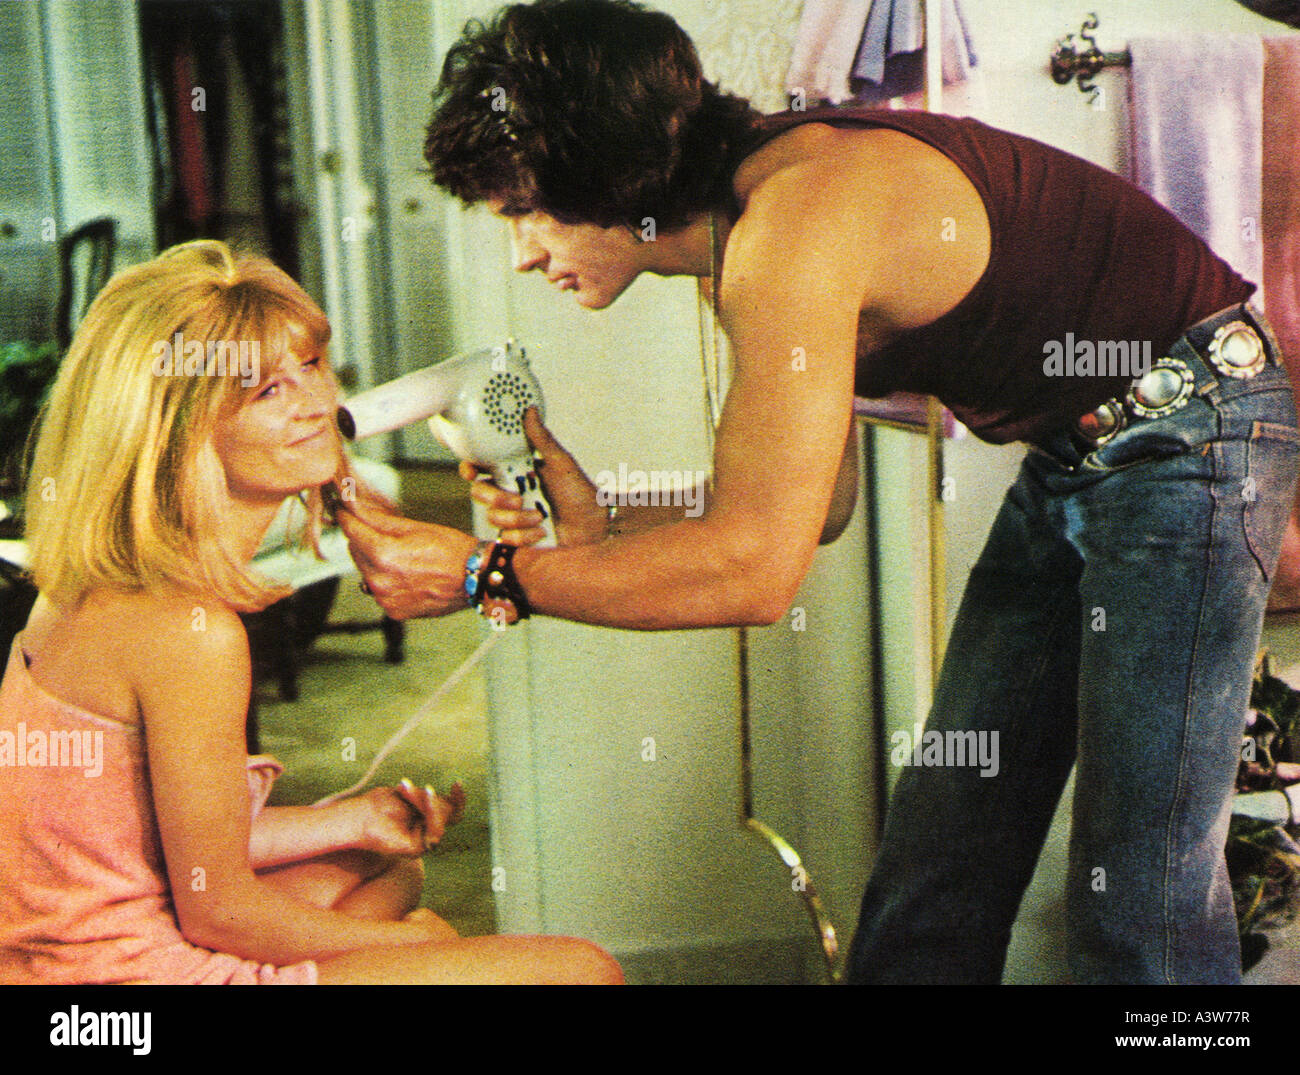 SHAMPOO 1975 Columbia film with Warren Beatty  and Julie Christie - Stock Image